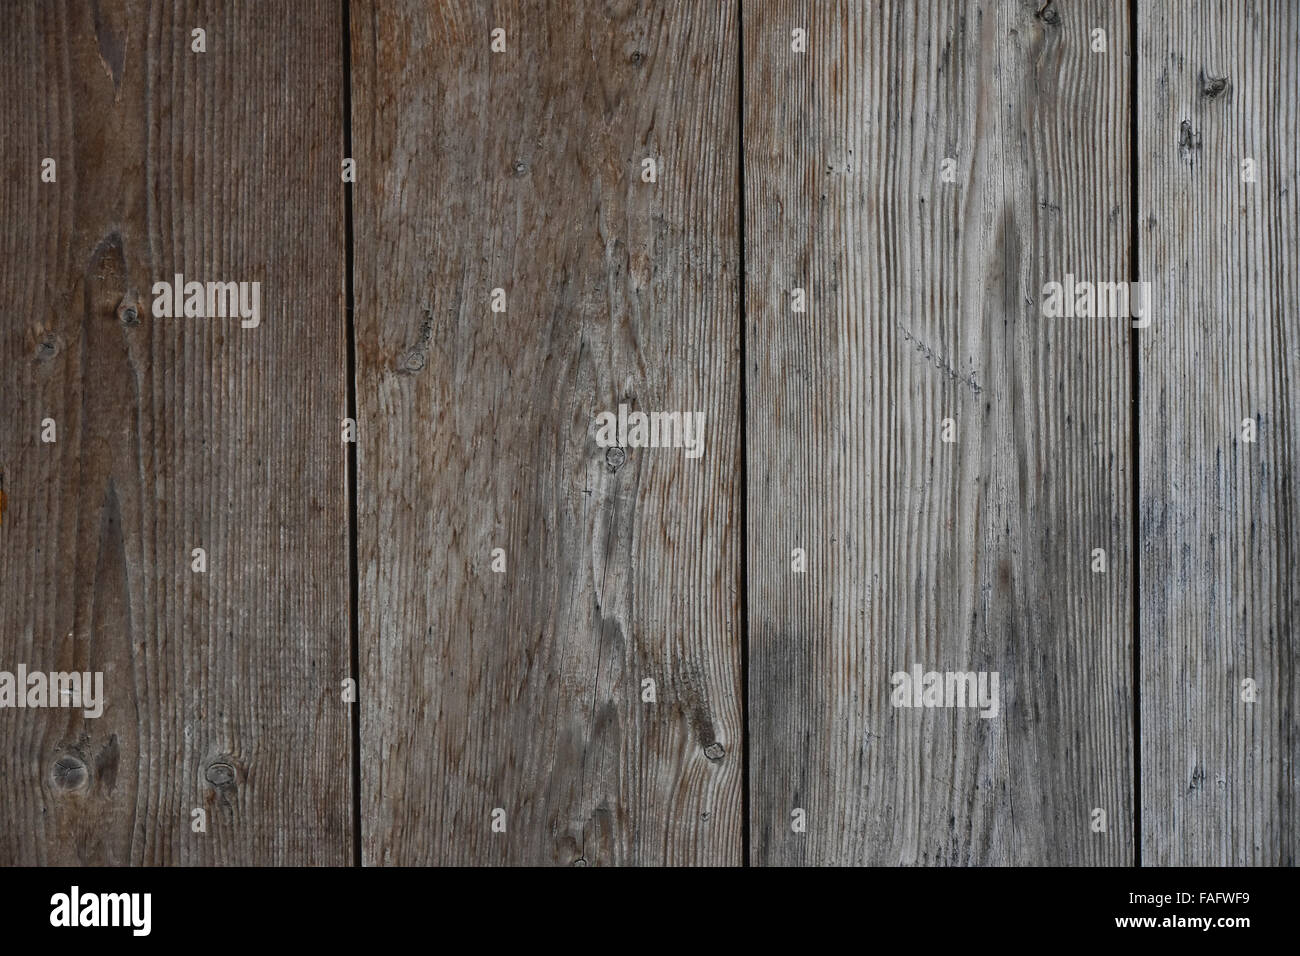 Old vintage rustic aged antique wooden sepia panel with vertical gaps, planks and chinks Stock Photo